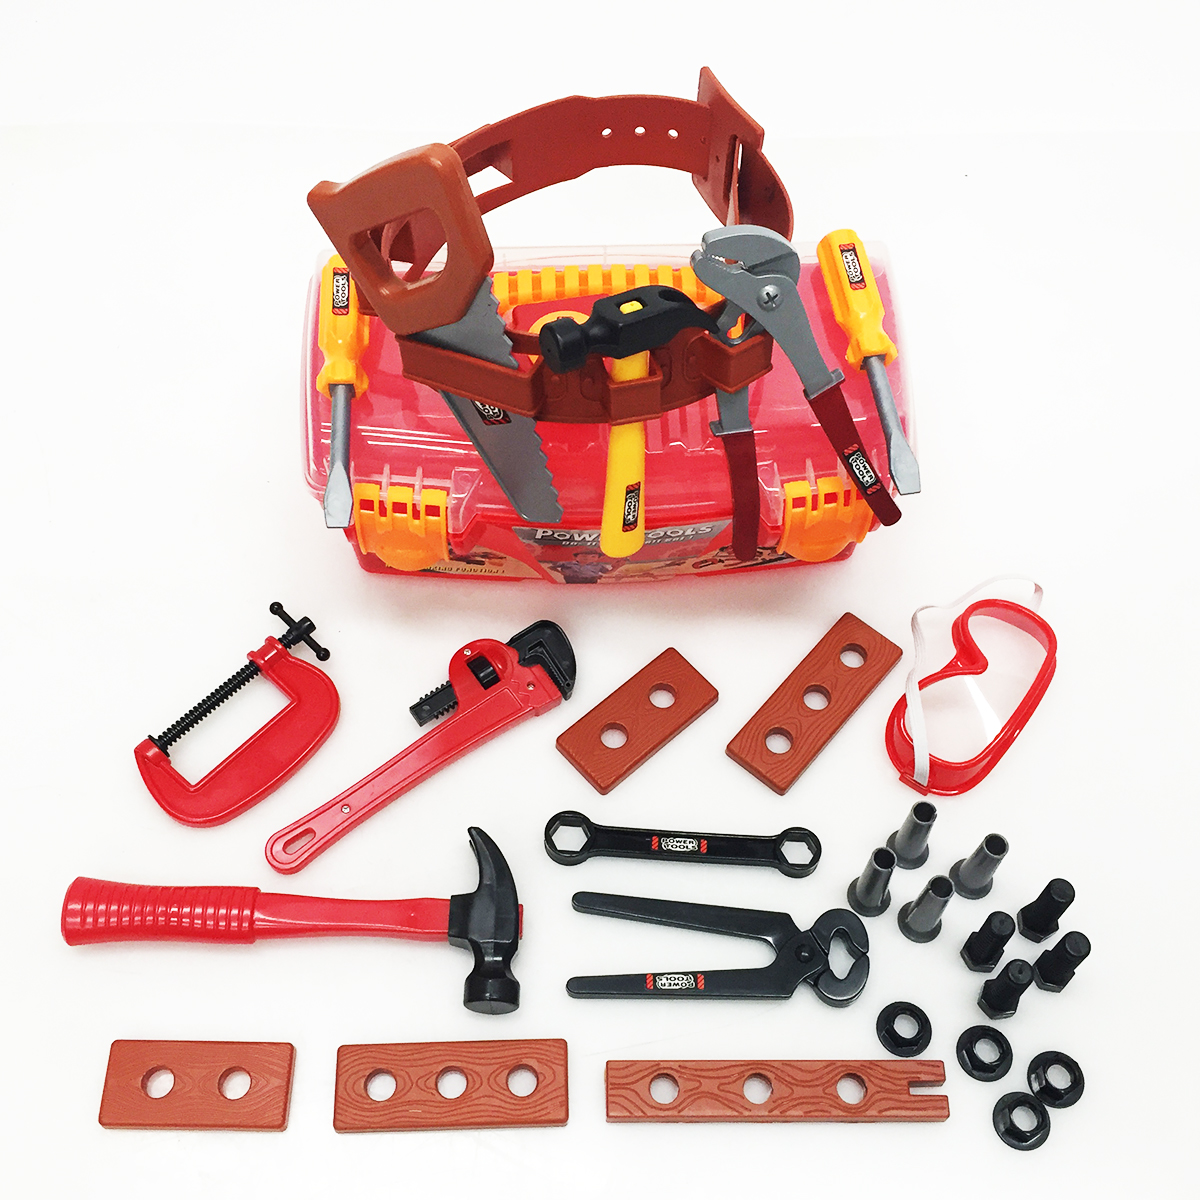 power tools for kids construction toys boys toddlers hammer toolbox ebay. Black Bedroom Furniture Sets. Home Design Ideas